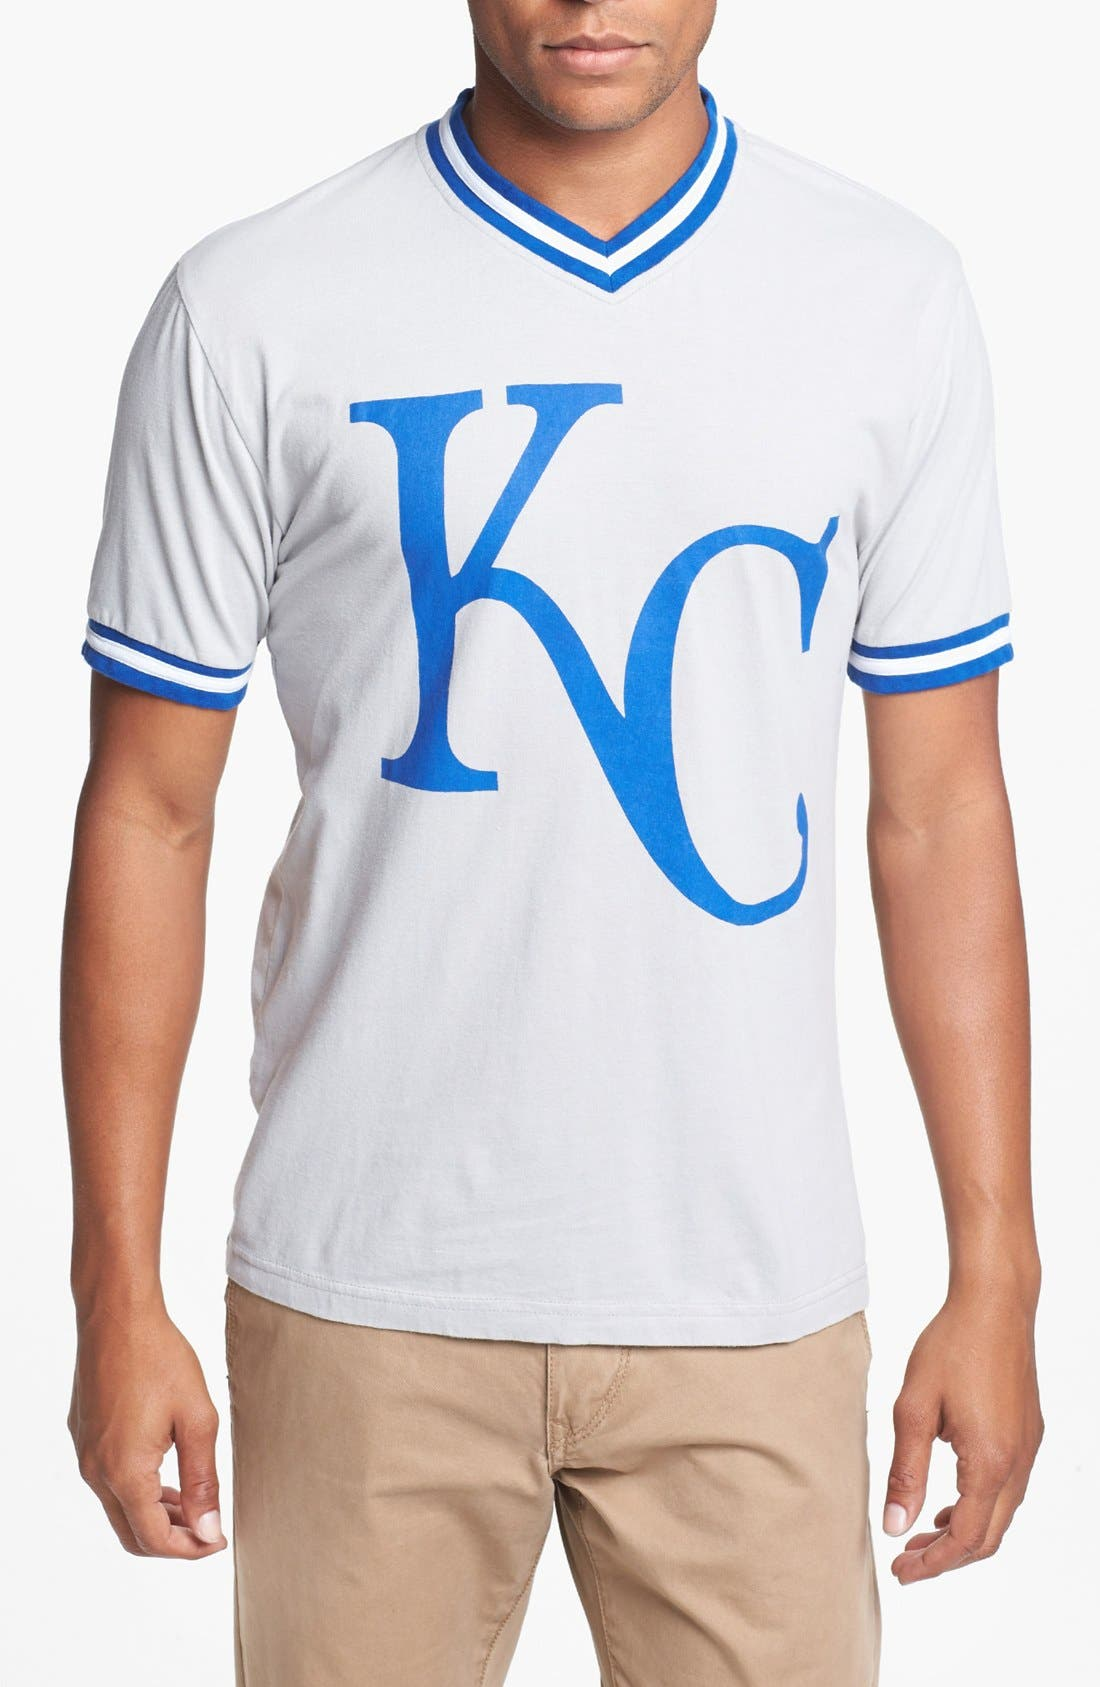 Alternate Image 1 Selected - Wright & Ditson 'Royals' V-Neck T-Shirt